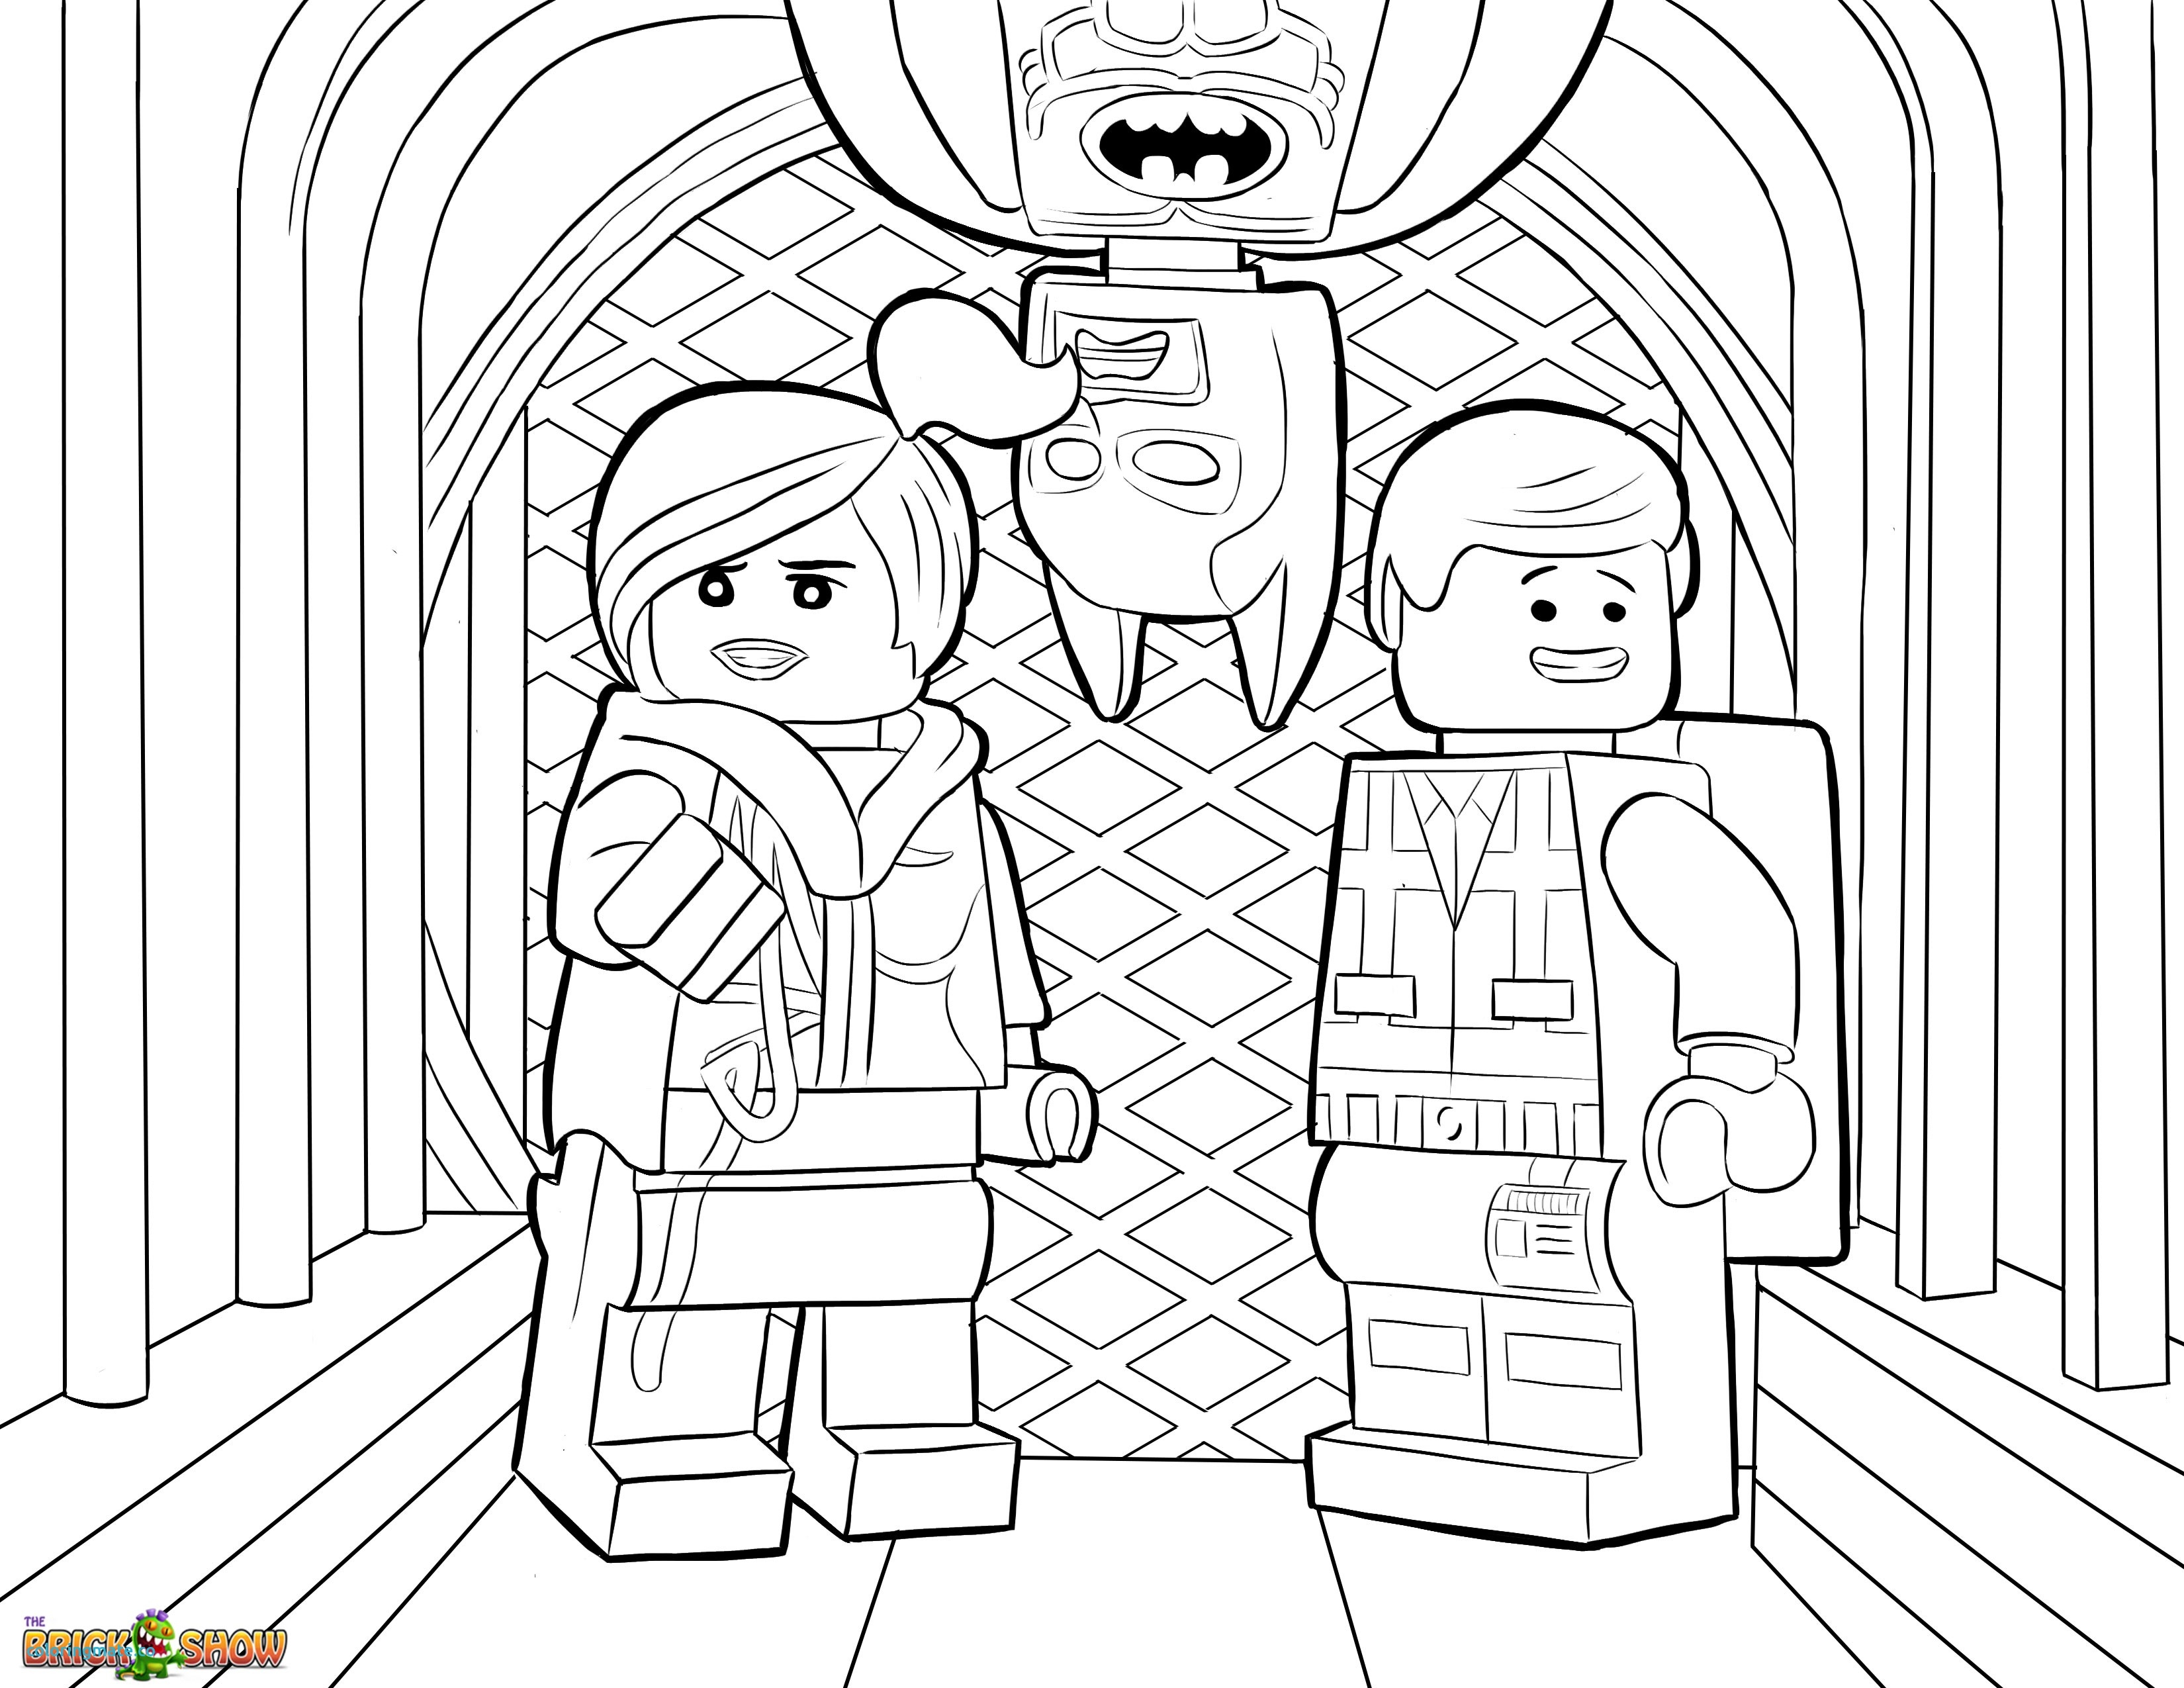 lego coloring pages printable free printable lego coloring pages for kids pages coloring lego printable